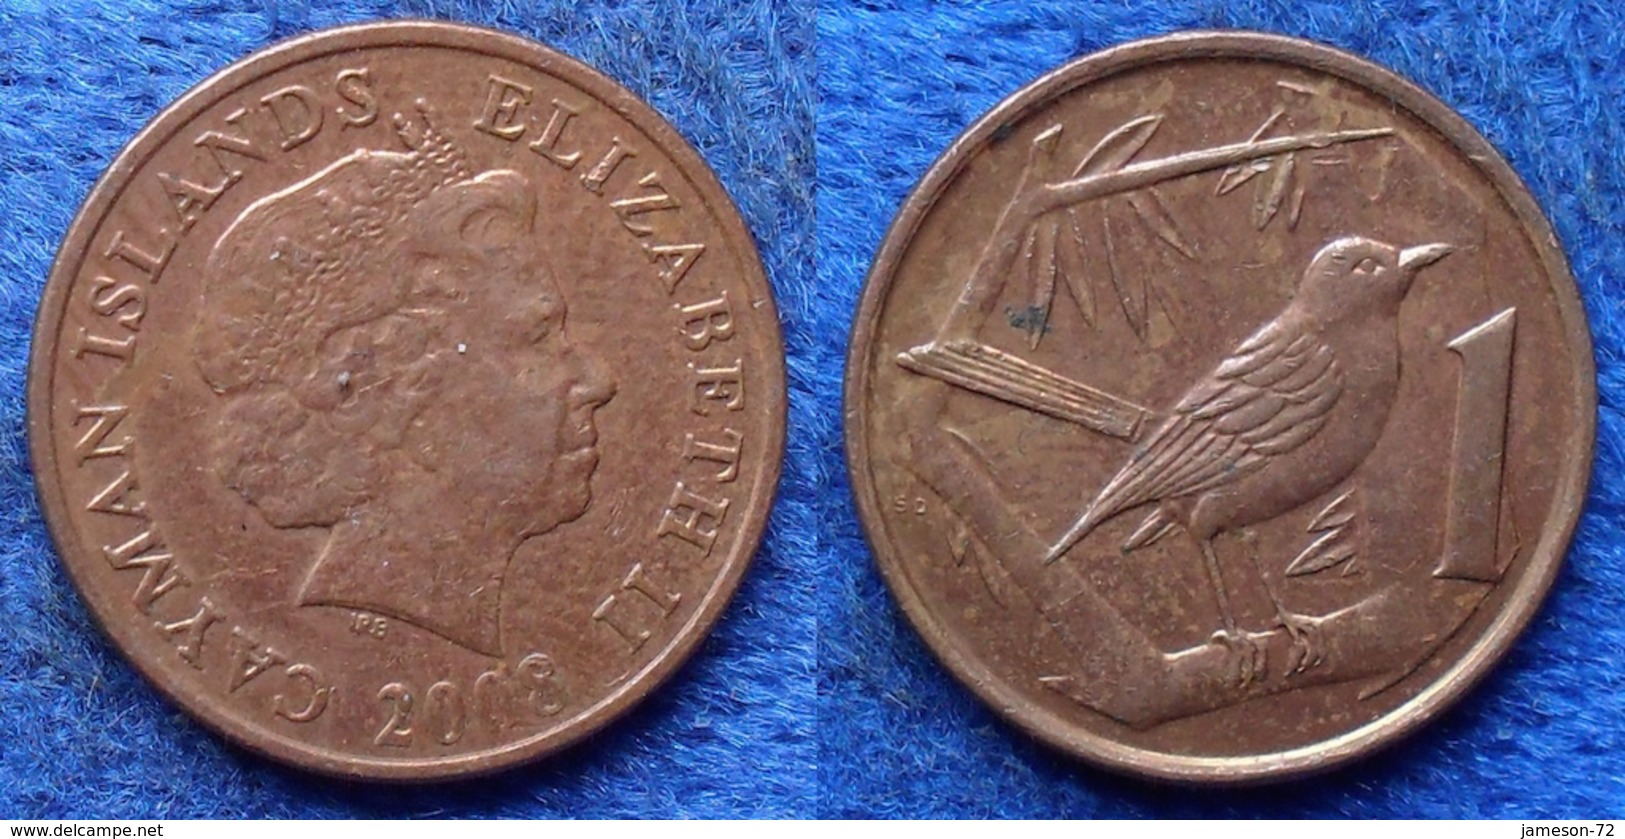 CAYMAN ISLANDS - 1 Cent 2008 KM# 131 British Colony - Edelweiss Coins - Cayman Islands